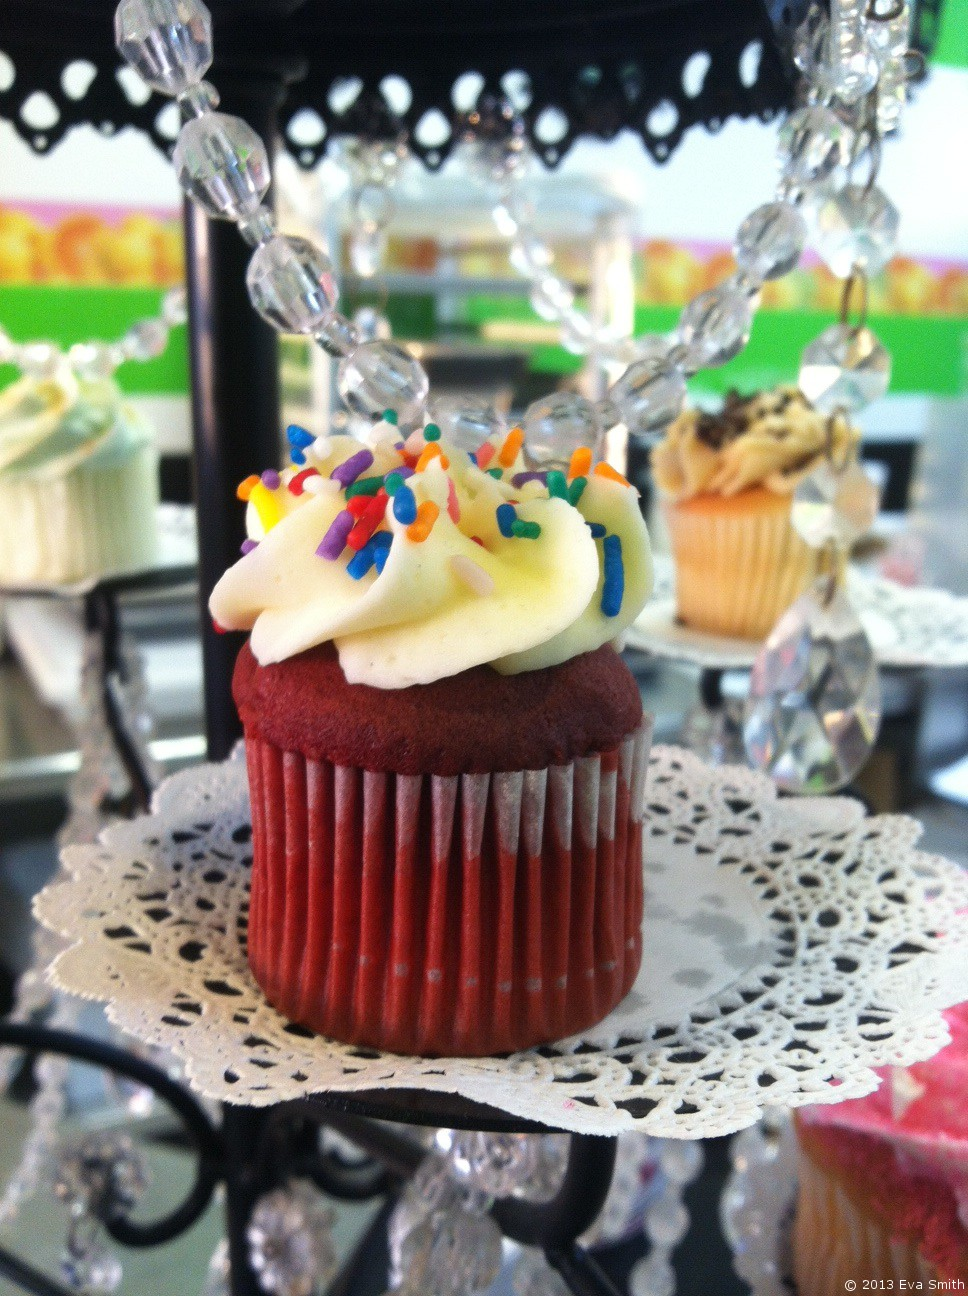 The Best Cupcakes Ever & Mini Red Velvet Cupcake Recipe